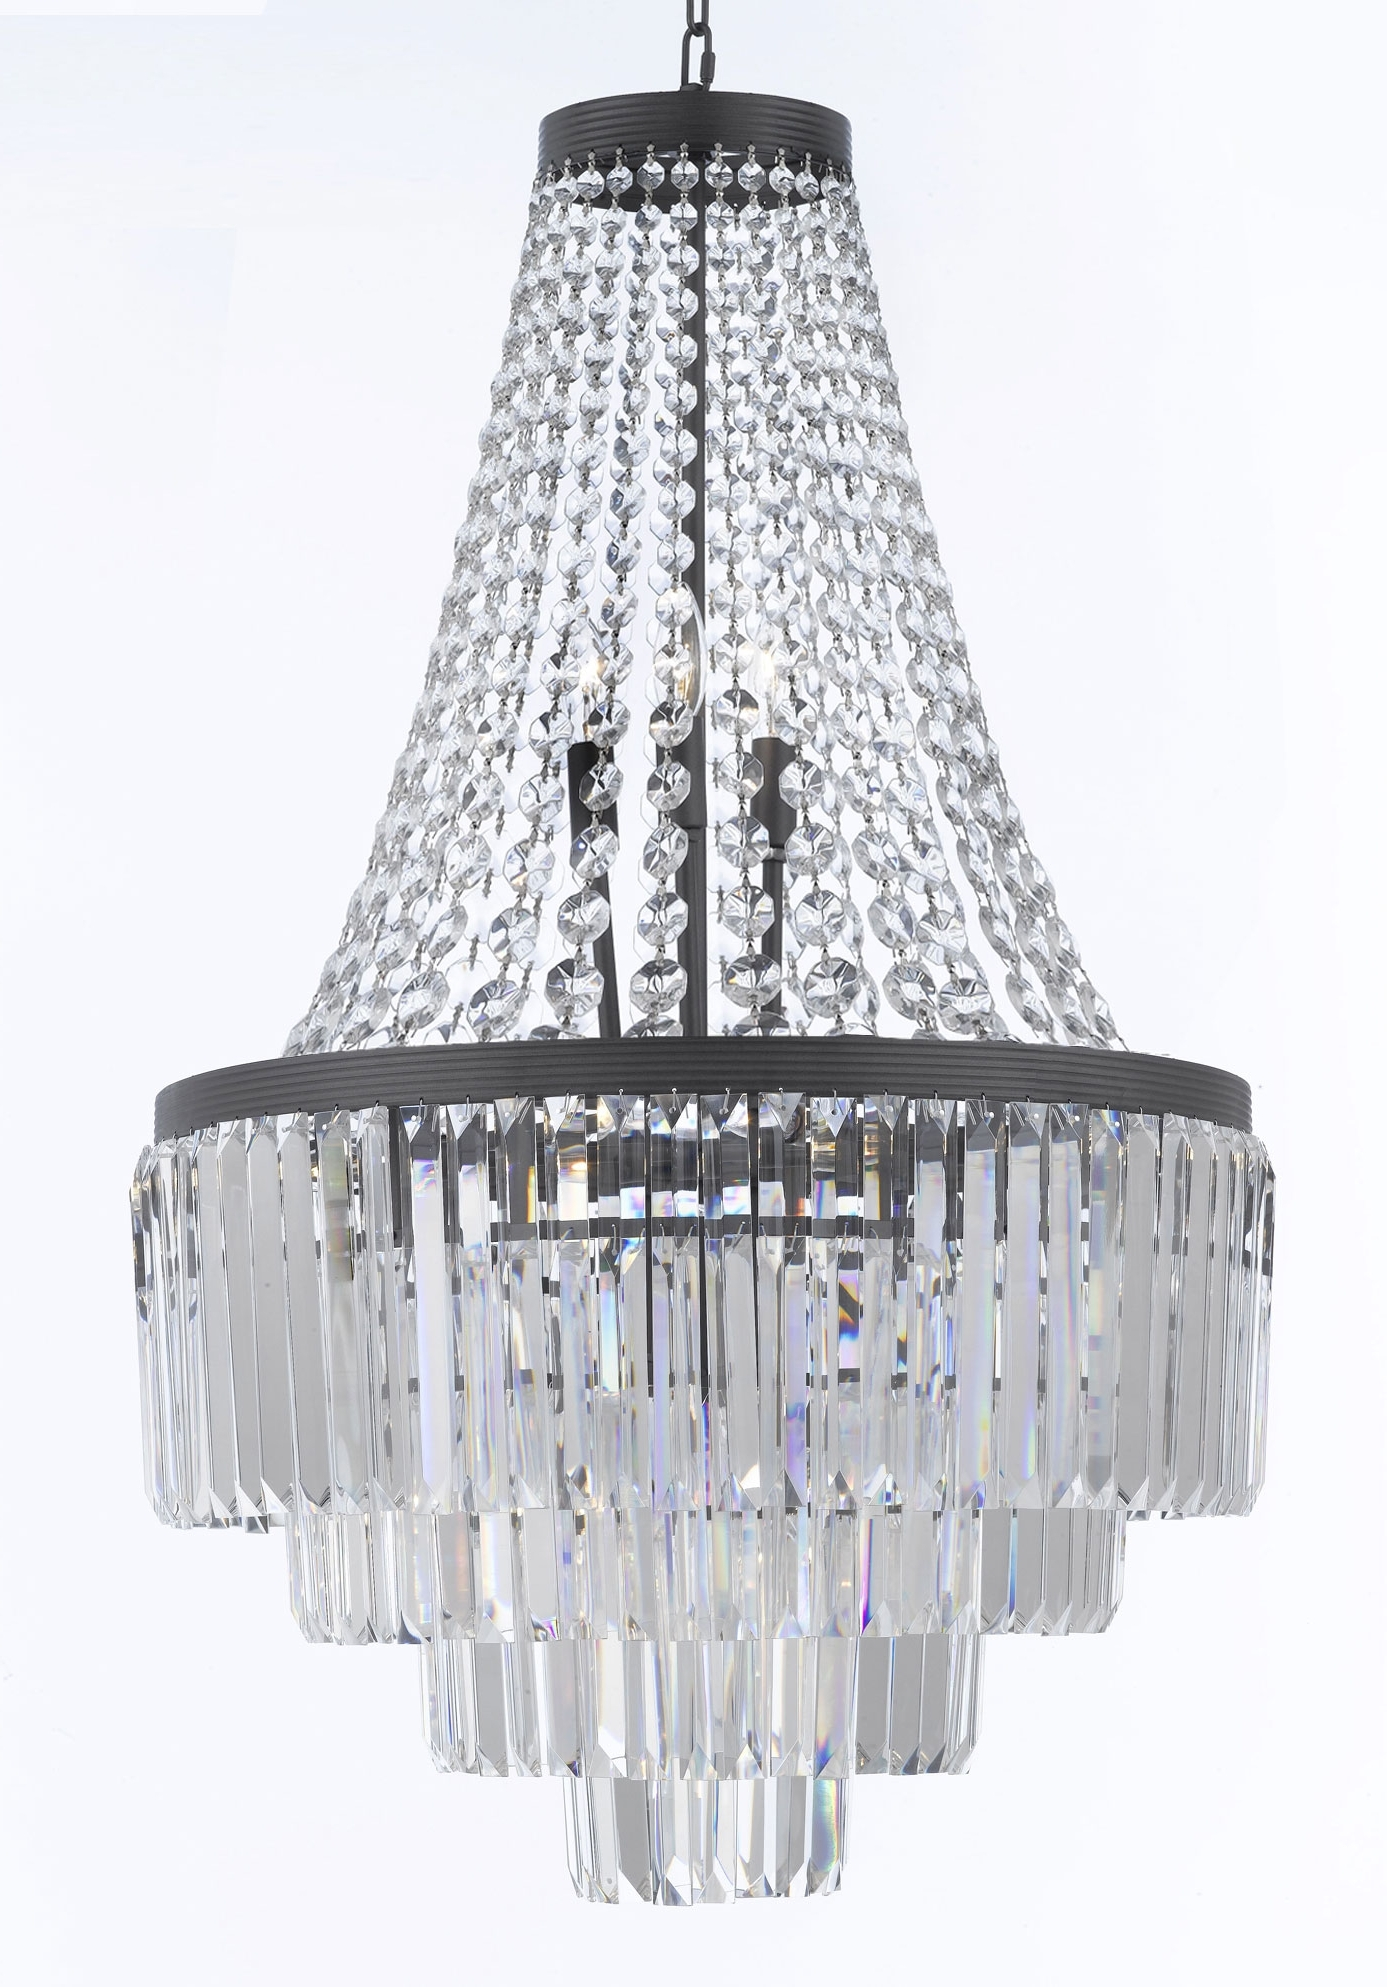 3 Tier Crystal Chandelier in Current G7-1100/9 Gallery Chandeliers Retro Odeon Crystal Glass Fringe 3